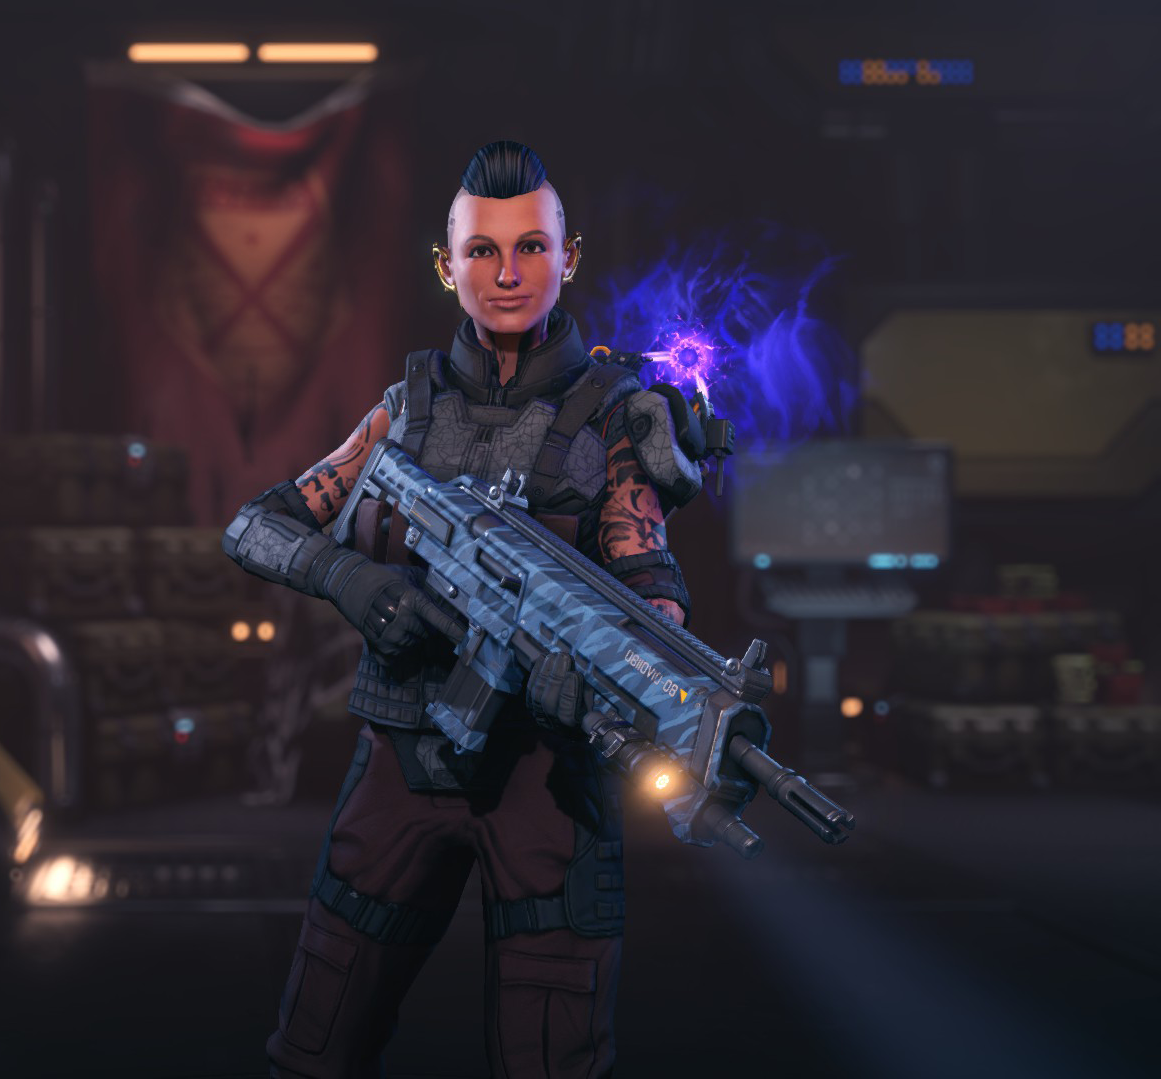 Mass Effect's Jack Appearance Pack для XCOM 2 - Скриншот 2